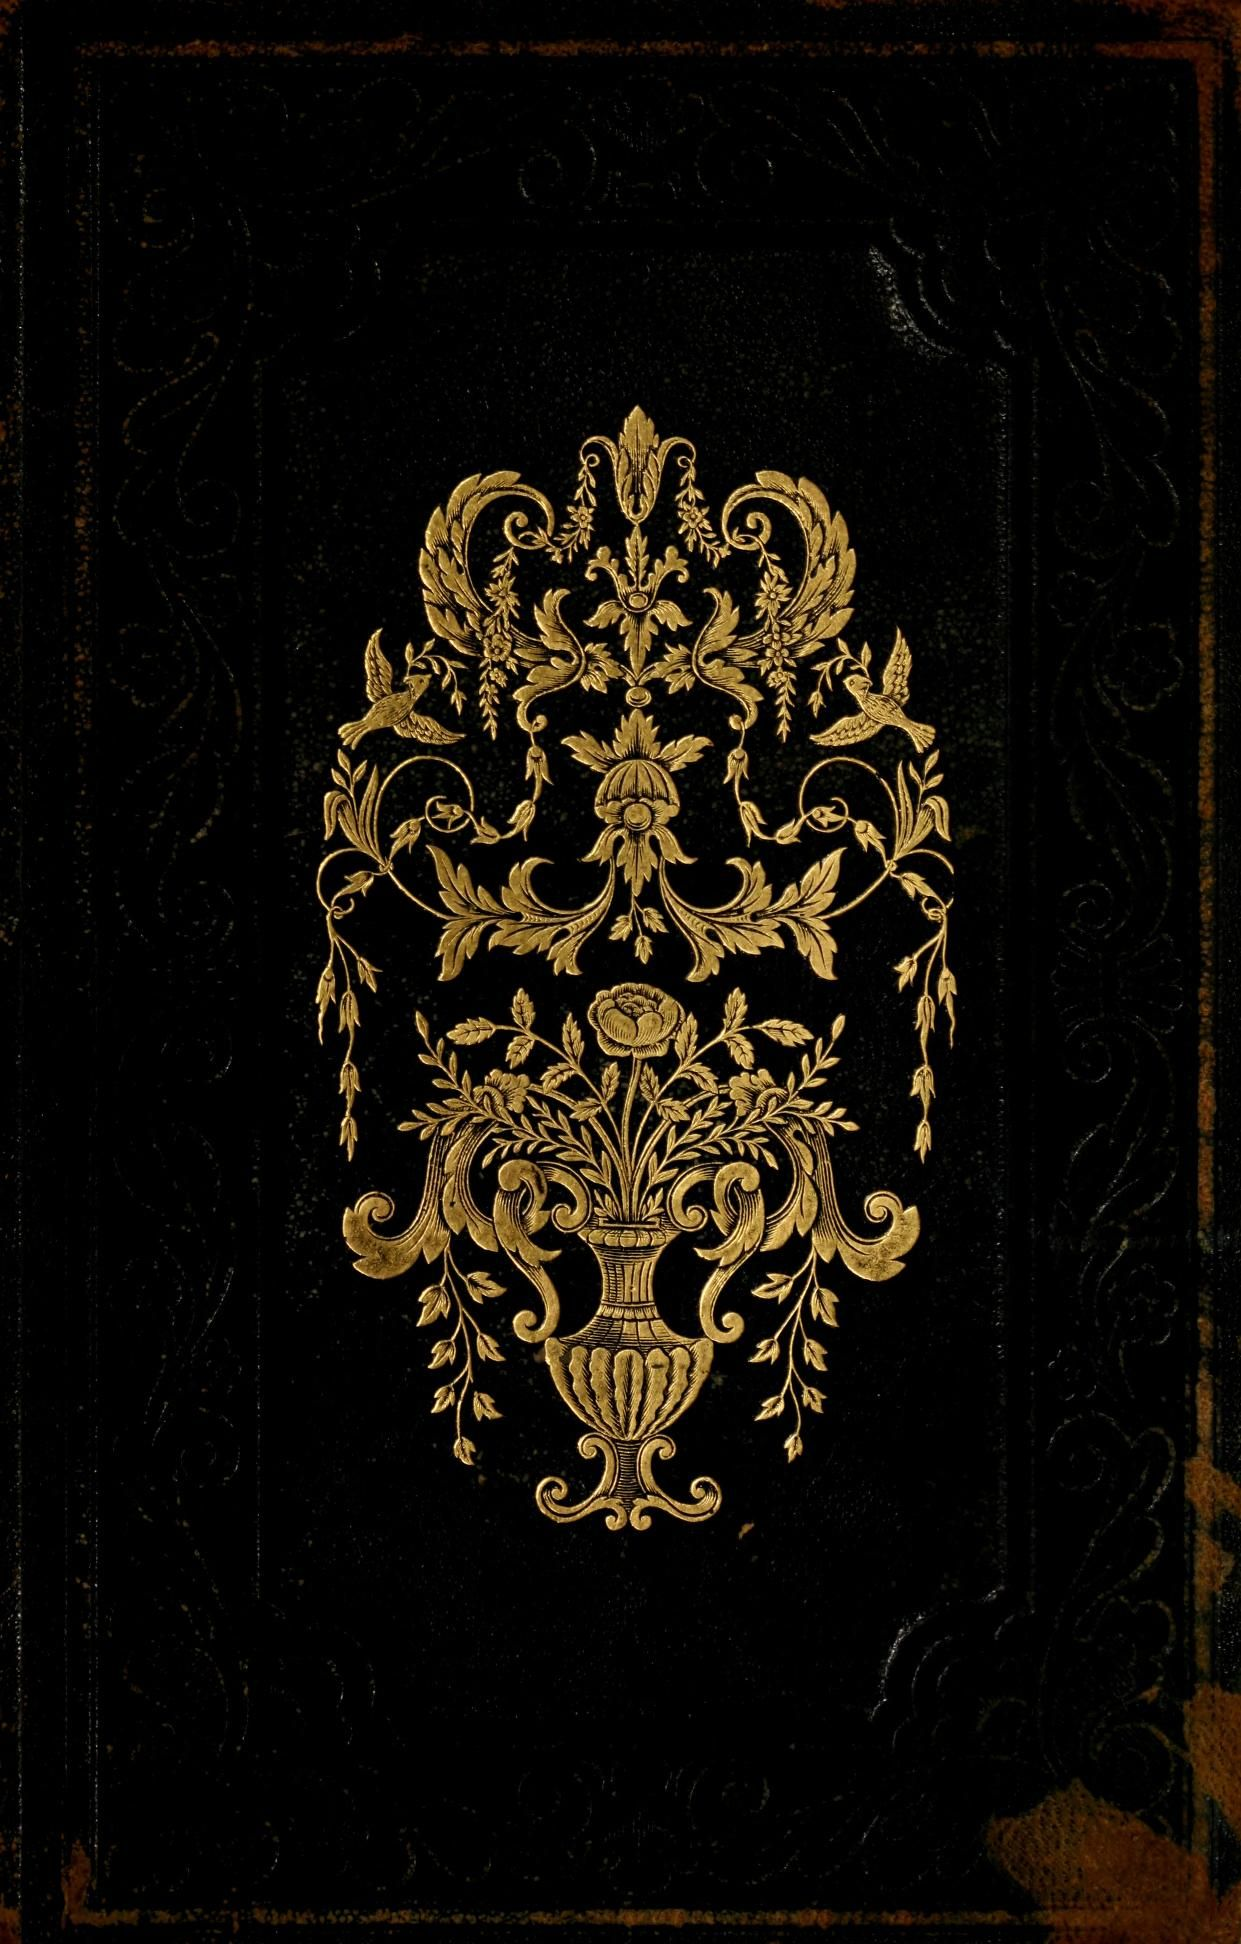 Pin By Maryalice Kurr On Book Covers Antique Books Vintage Book Covers Book Cover Art